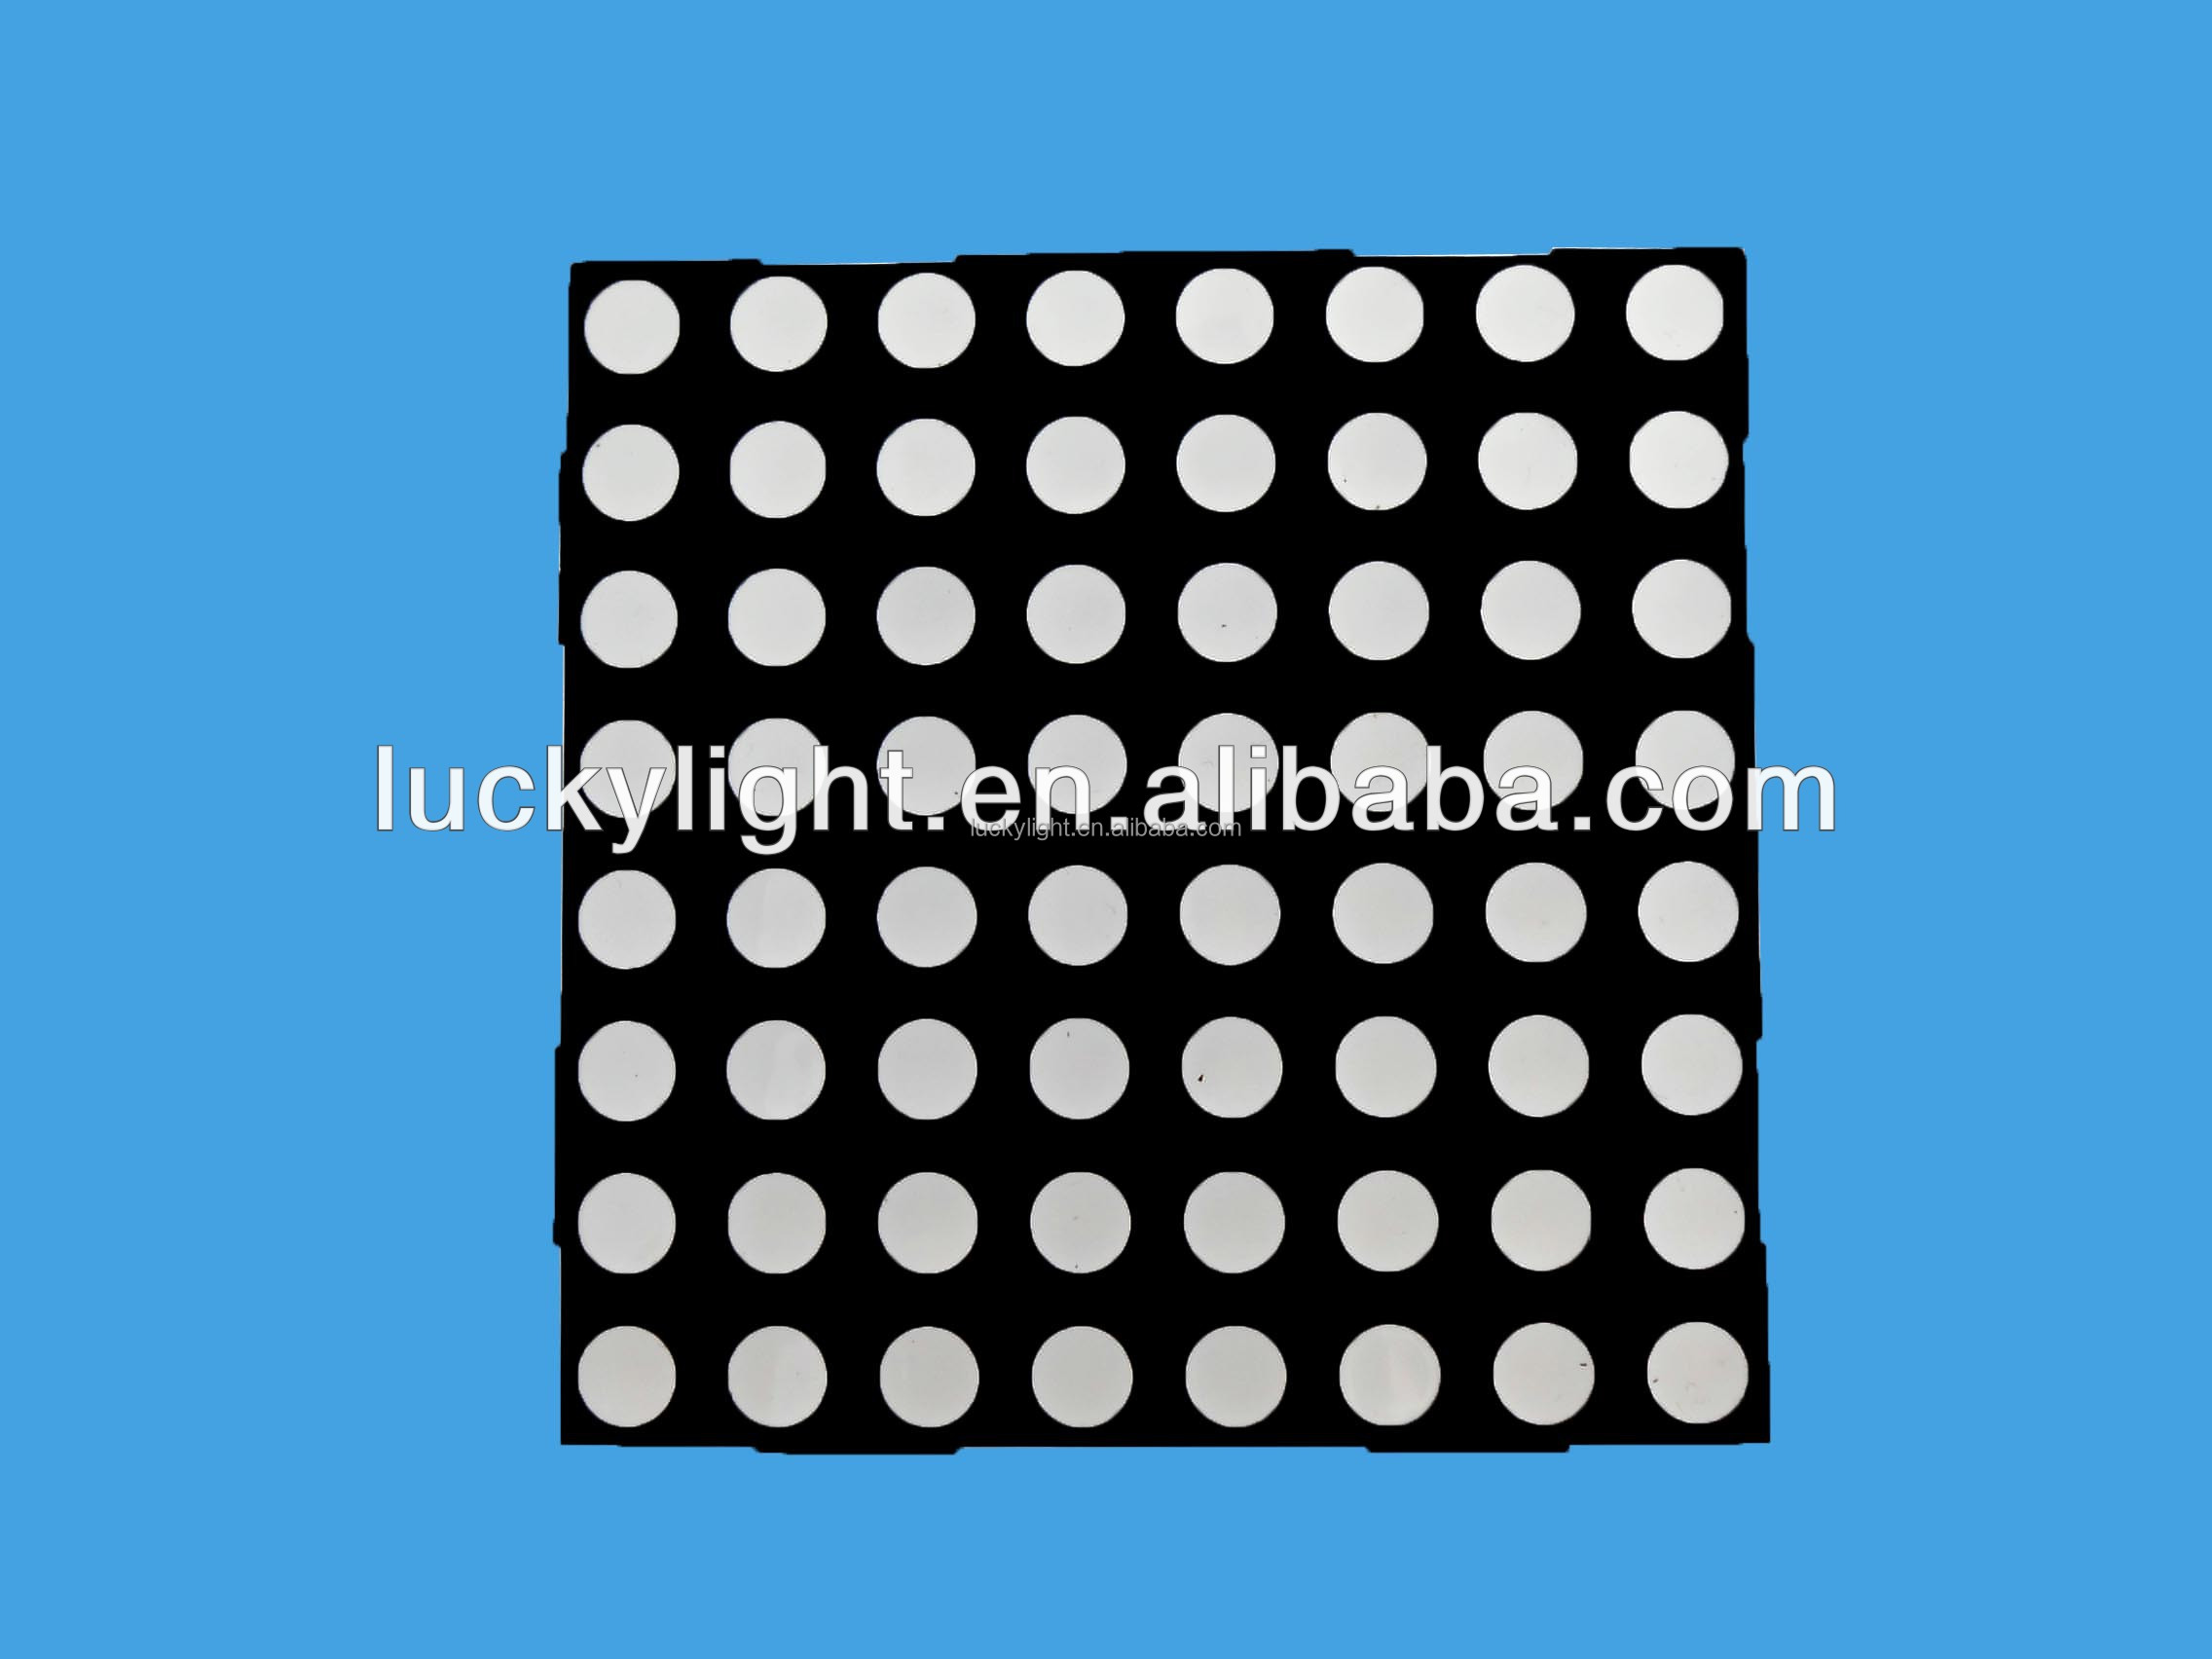 7.62mm Red Color smd Dot Matrix LED Display, hot new products for 2015, indoor vedio display/panel/screen